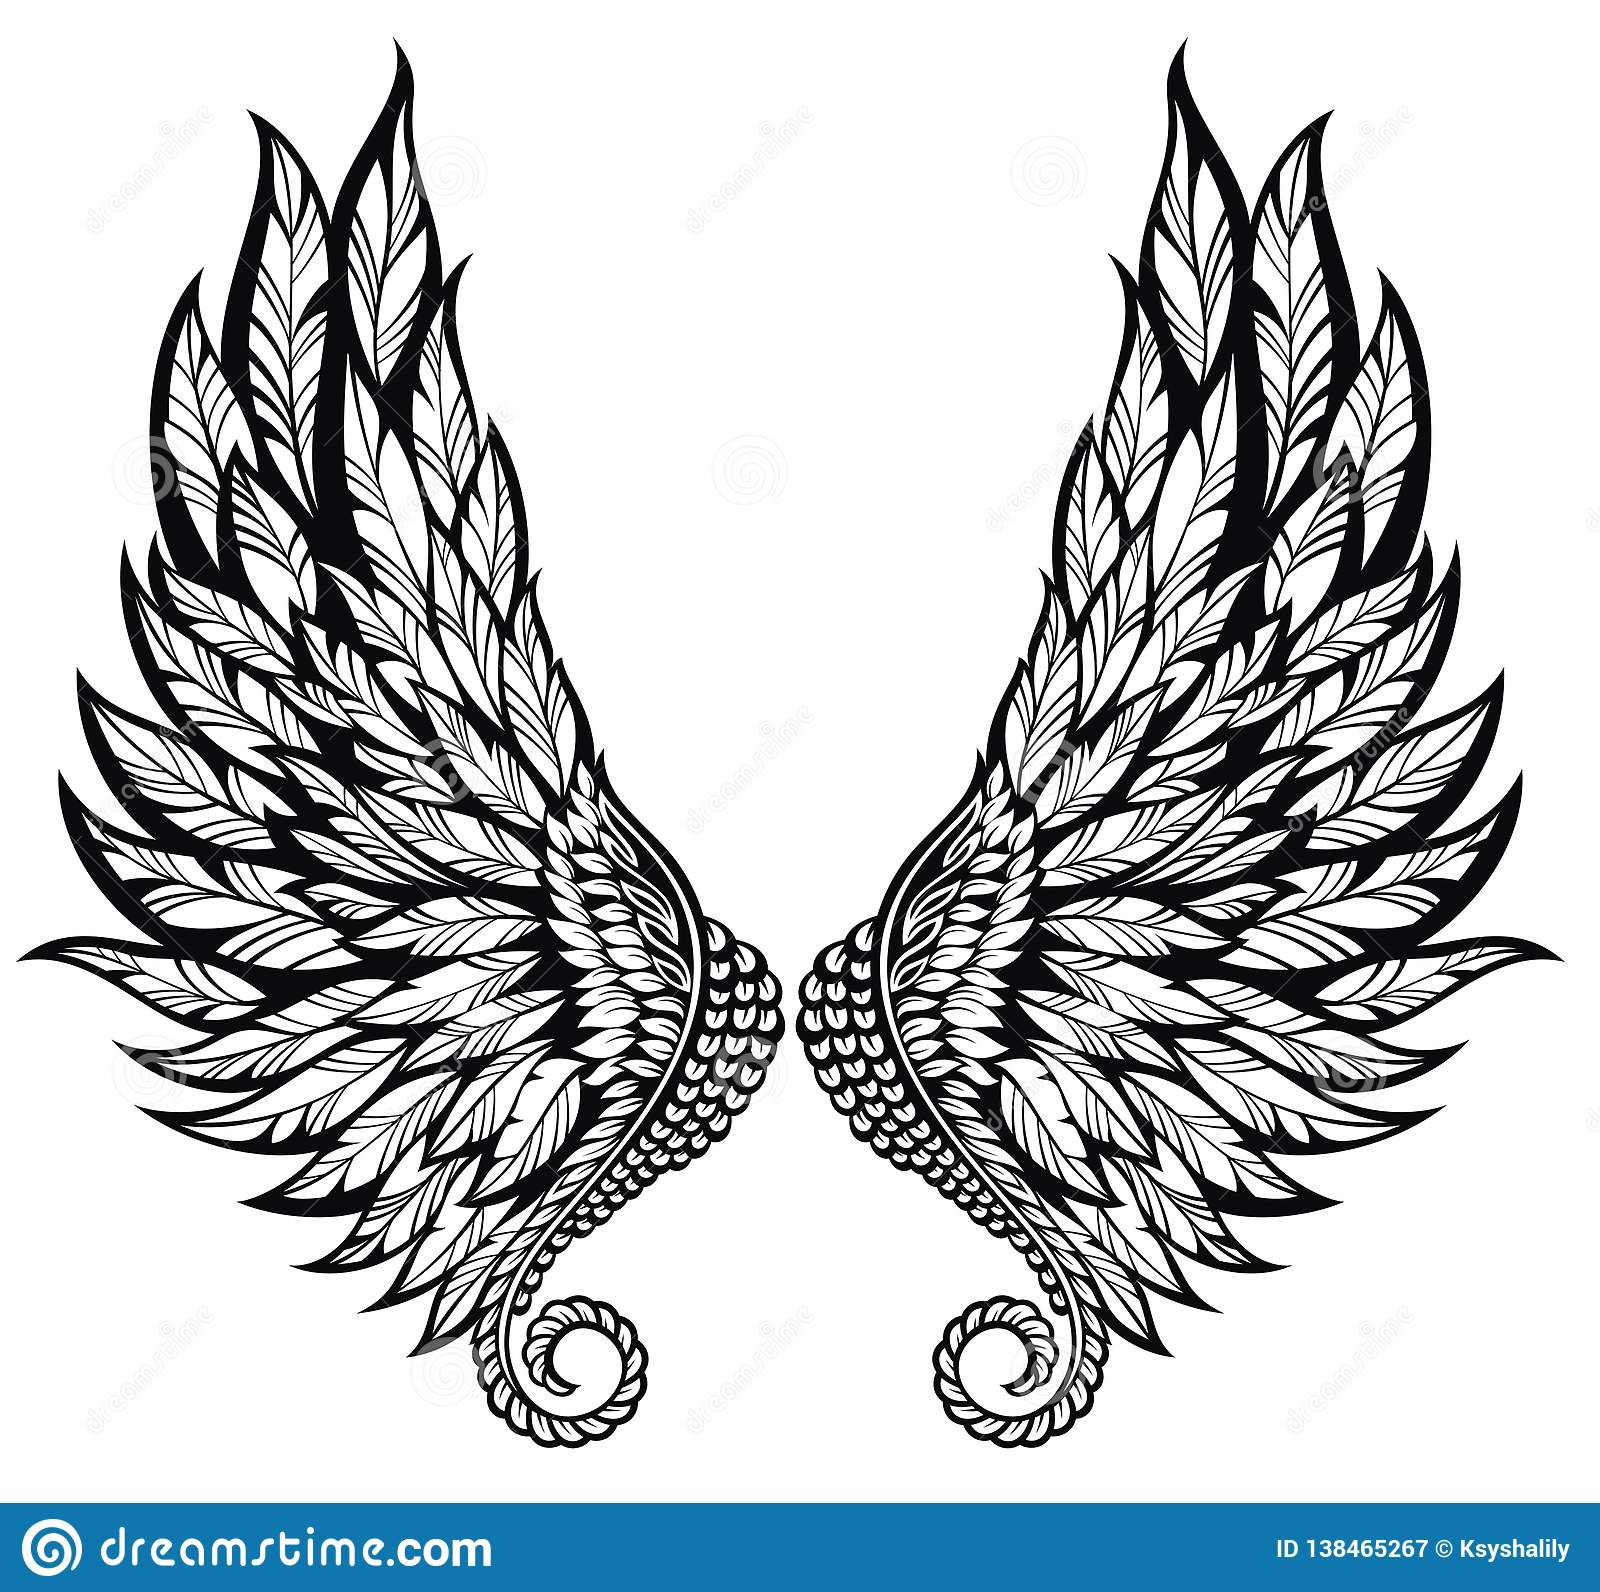 Black And White Angel Wings Tattoo Designs